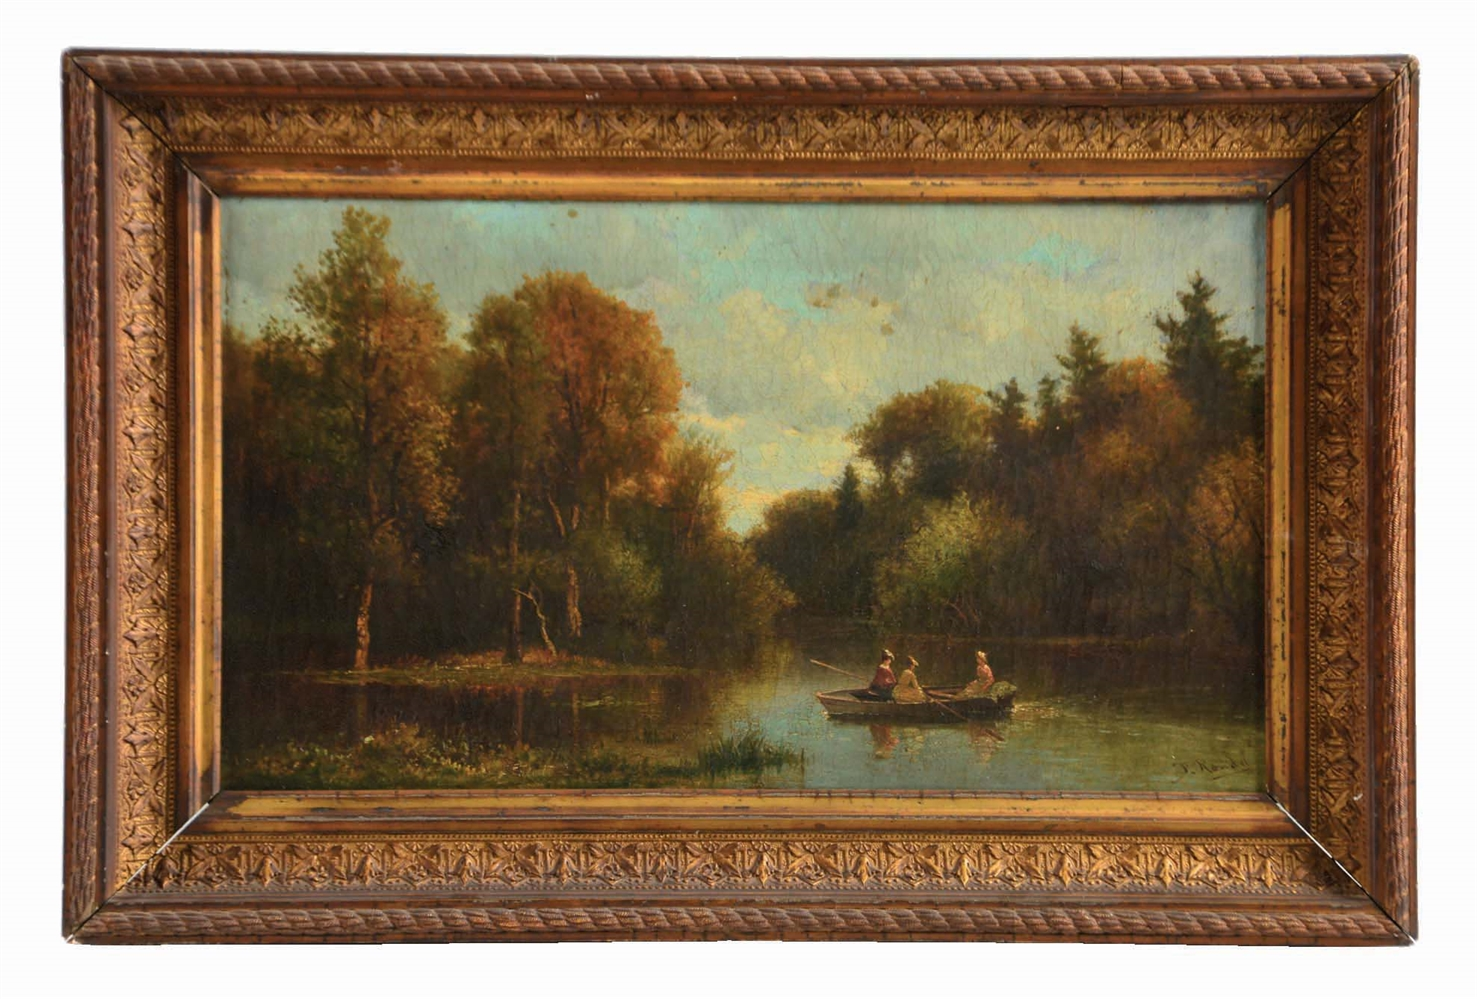 FREDERICK RONDEL SR. (AMERICAN, 1826 - 1892) LADIES ROWING IN A QUIET RIVER LANDSCAPE.